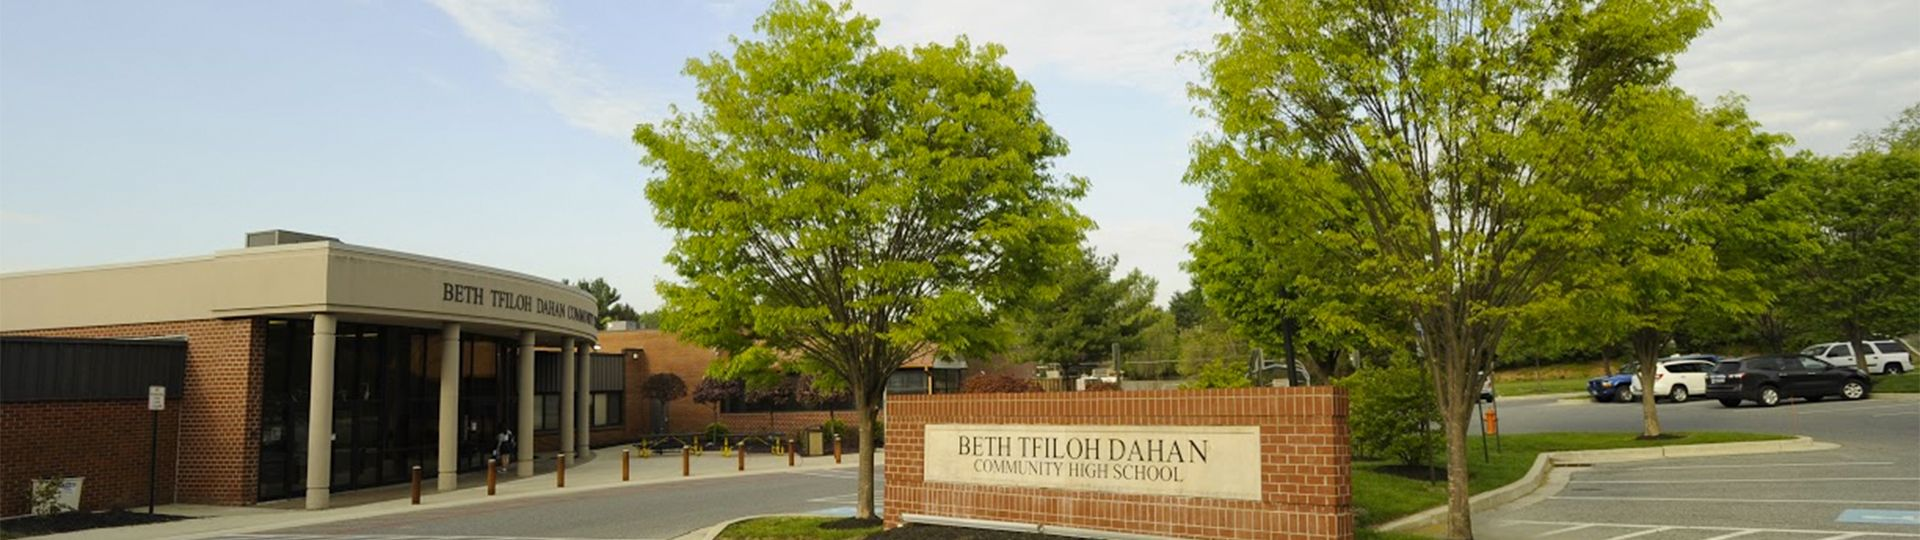 Beth Tfiloh Congregation & Community School | Beth Tfiloh Faculty